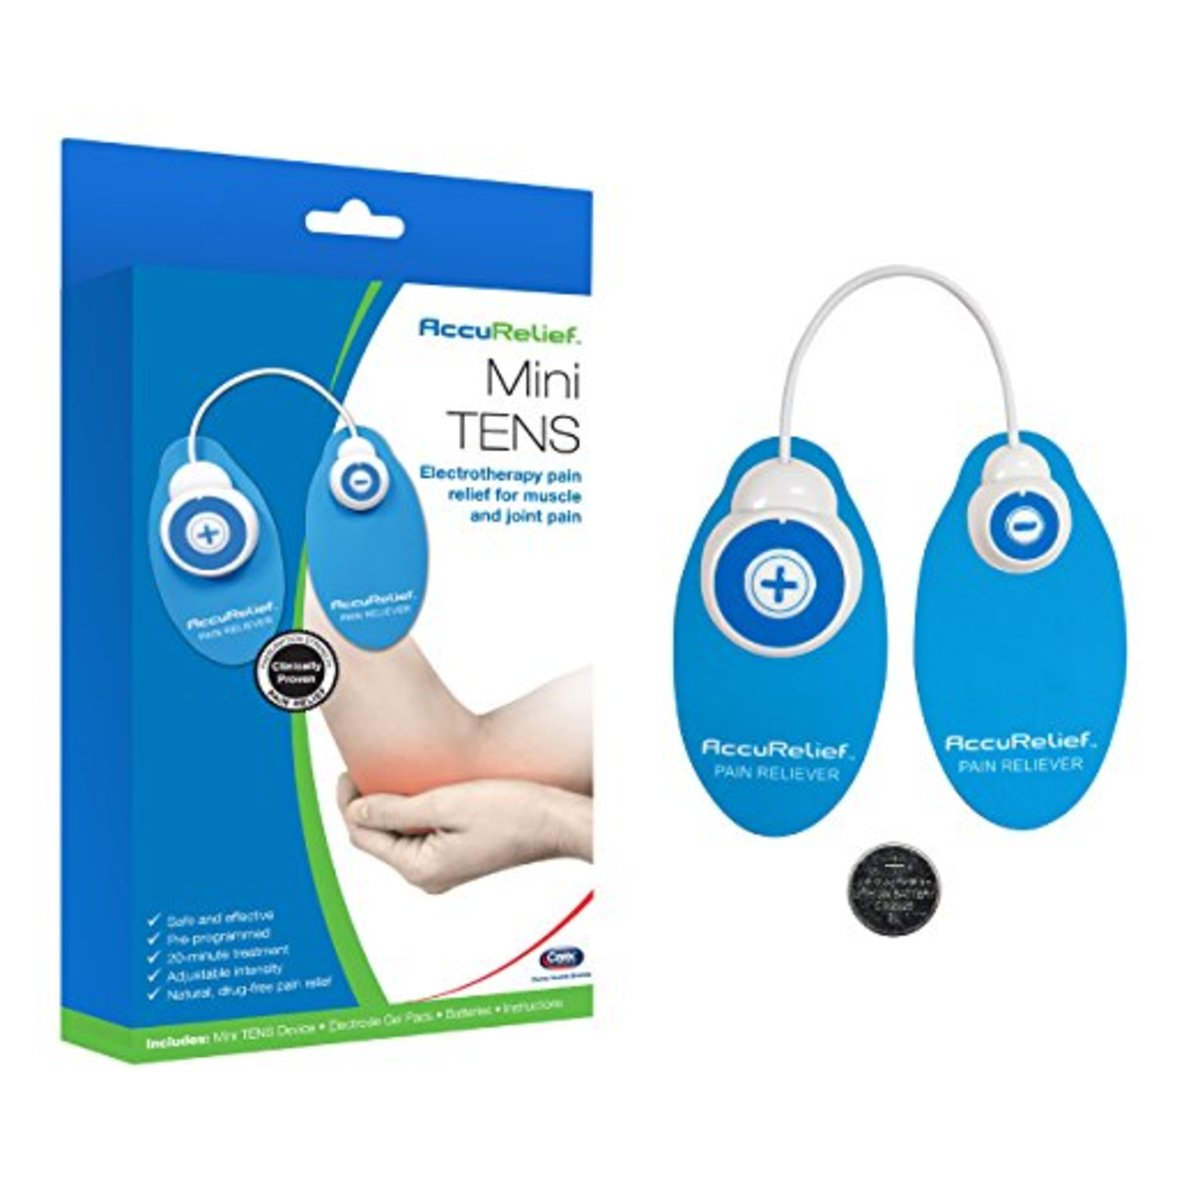 The AccuRelief Mini TENS System can help you to manage many different types of chronic or acute pain.